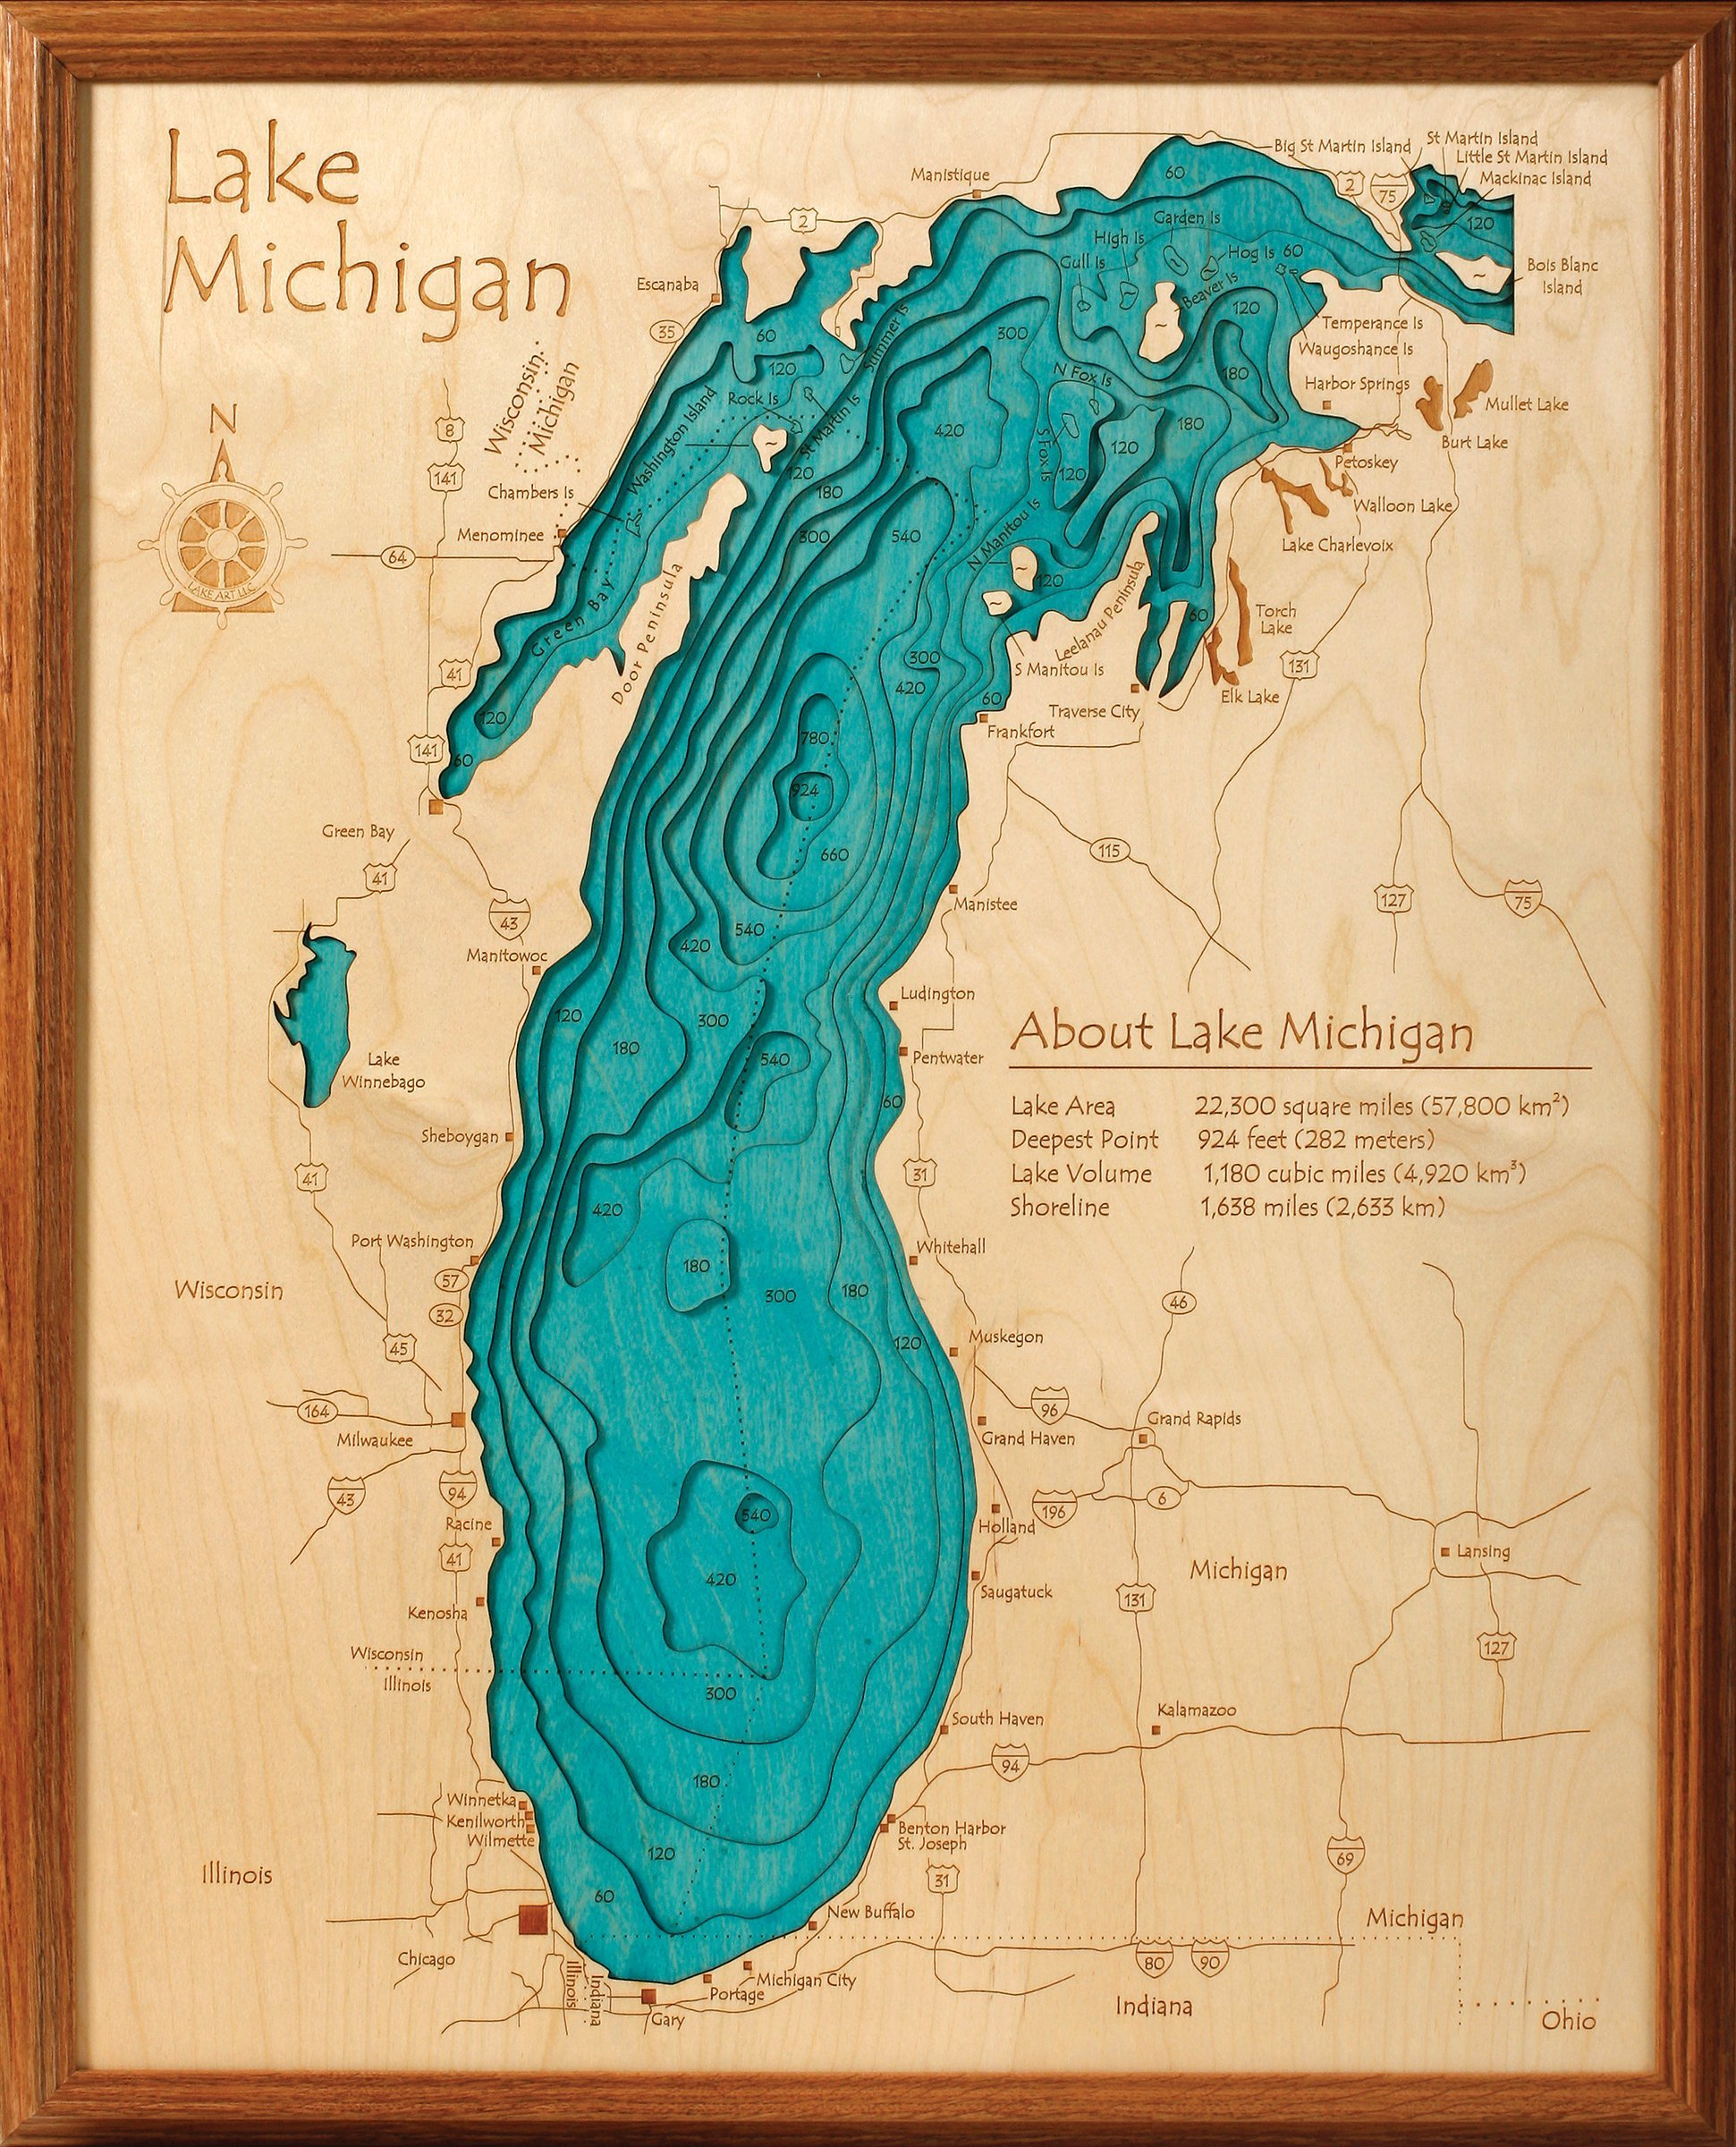 Fulton Chain of Lakes (First, Second, Third and Fourth Lakes) in Herkimer Hamilton, NY - 3D Map 16 x 20 IN - Laser carved wood nautical chart and topographic depth map. by Long Lake Lifestyle